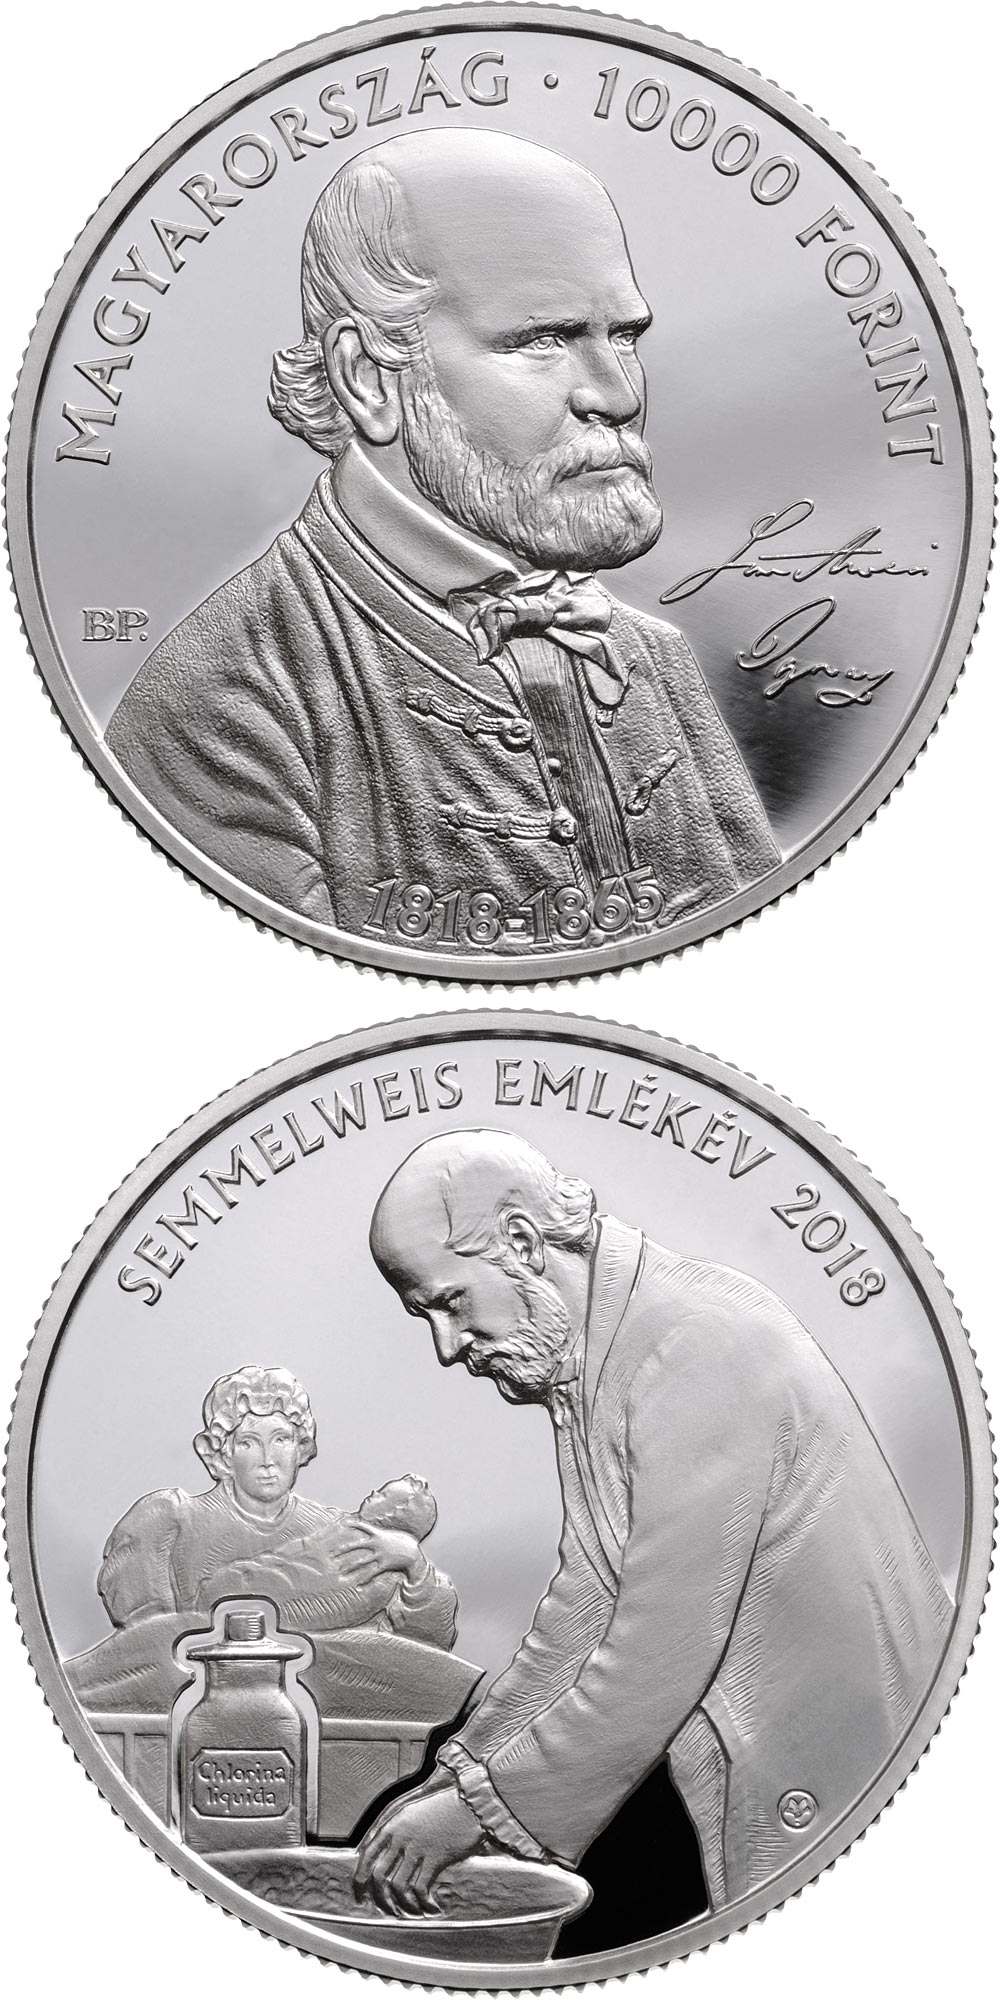 Image of 10000 forint coin – 200th Anniversary of the Birth of Ignác Semmelweis (1818-1865) | Hungary 2018.  The Silver coin is of Proof quality.